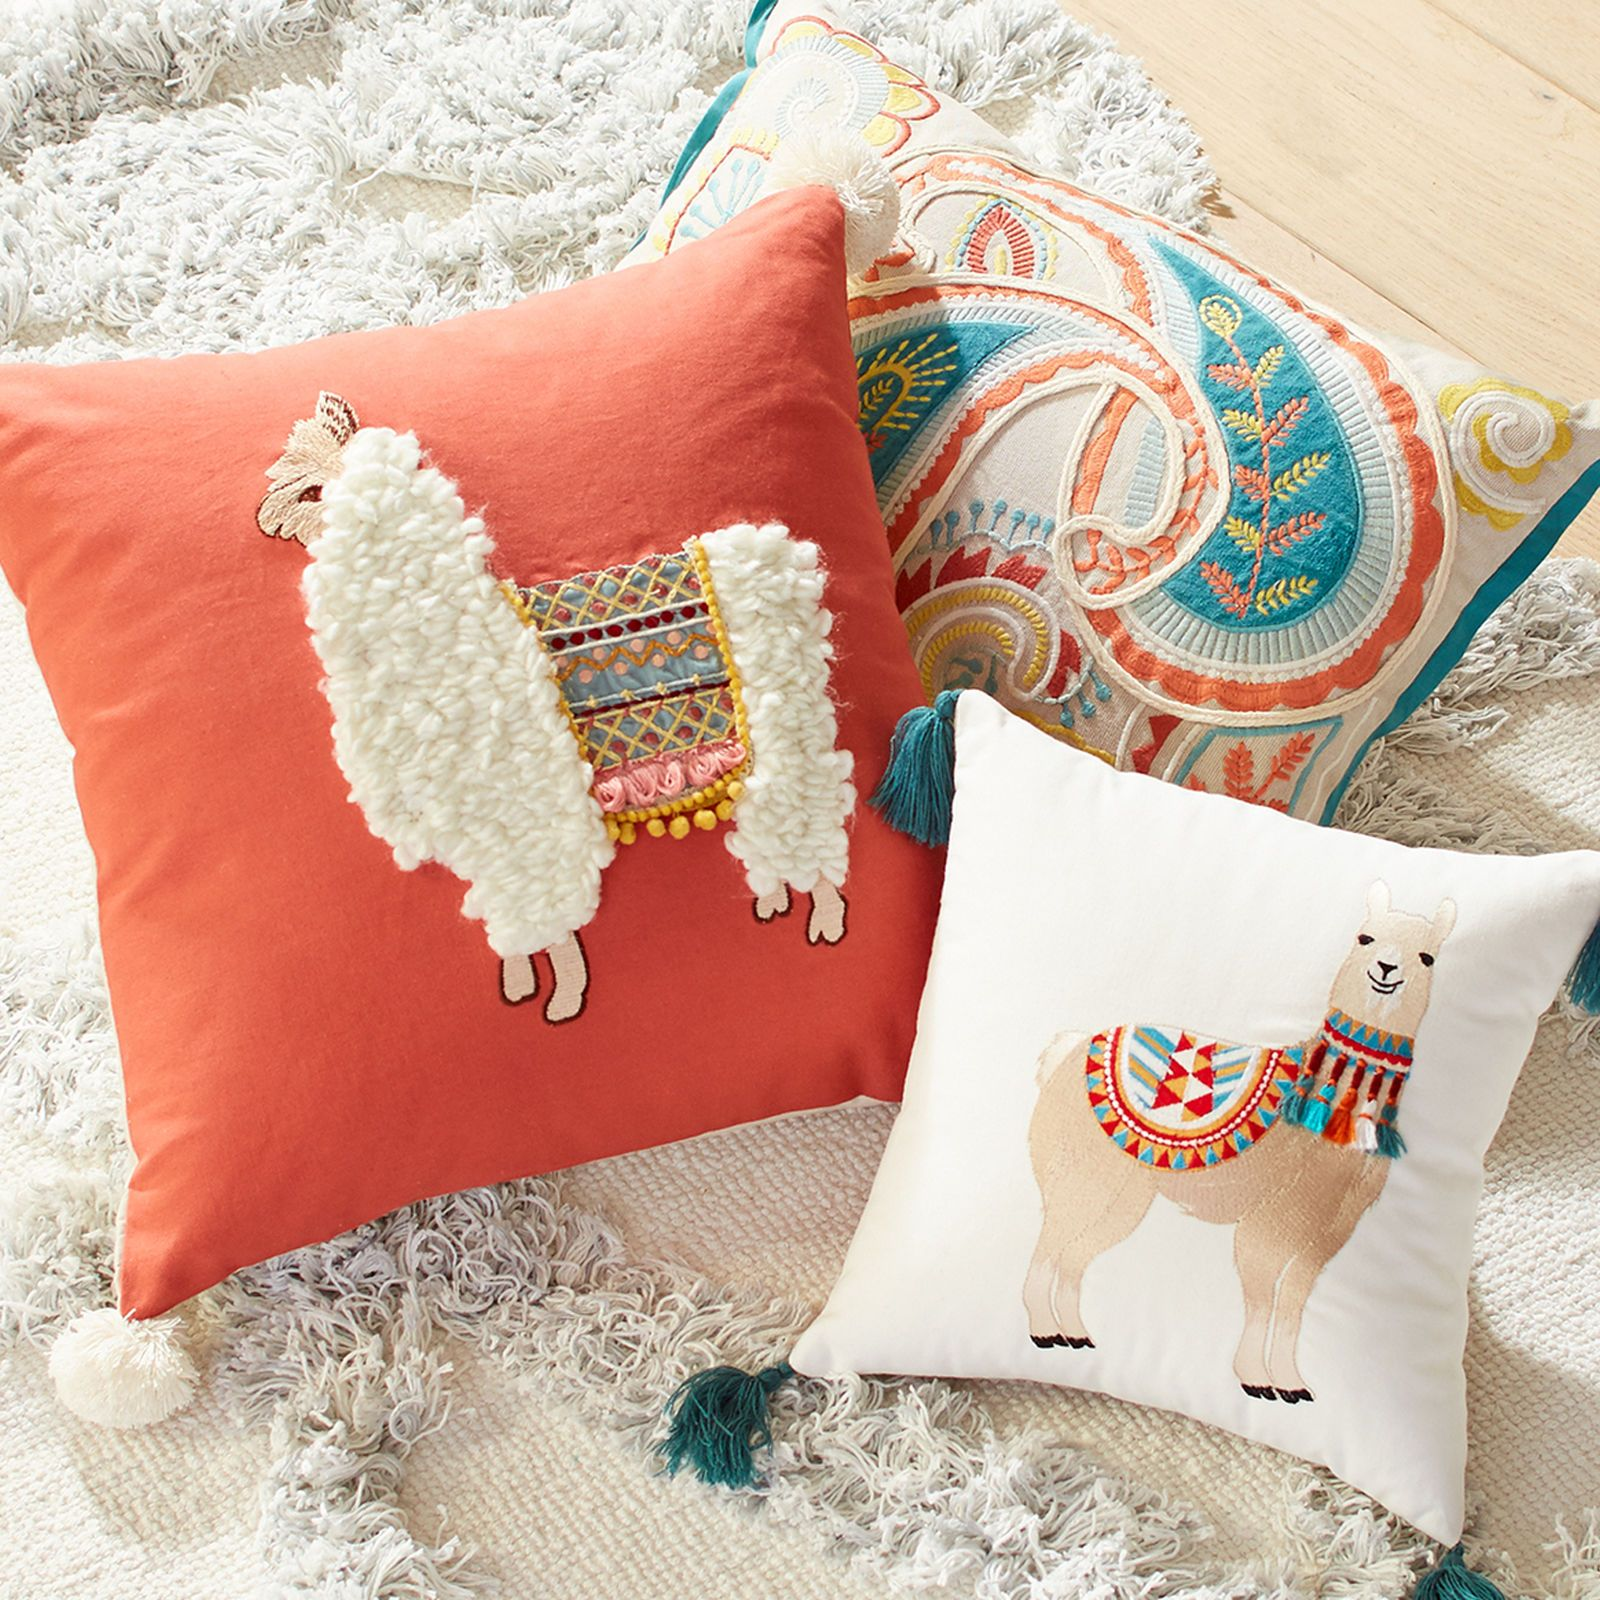 Embroidered Pillows: Embellished Throw Pillows